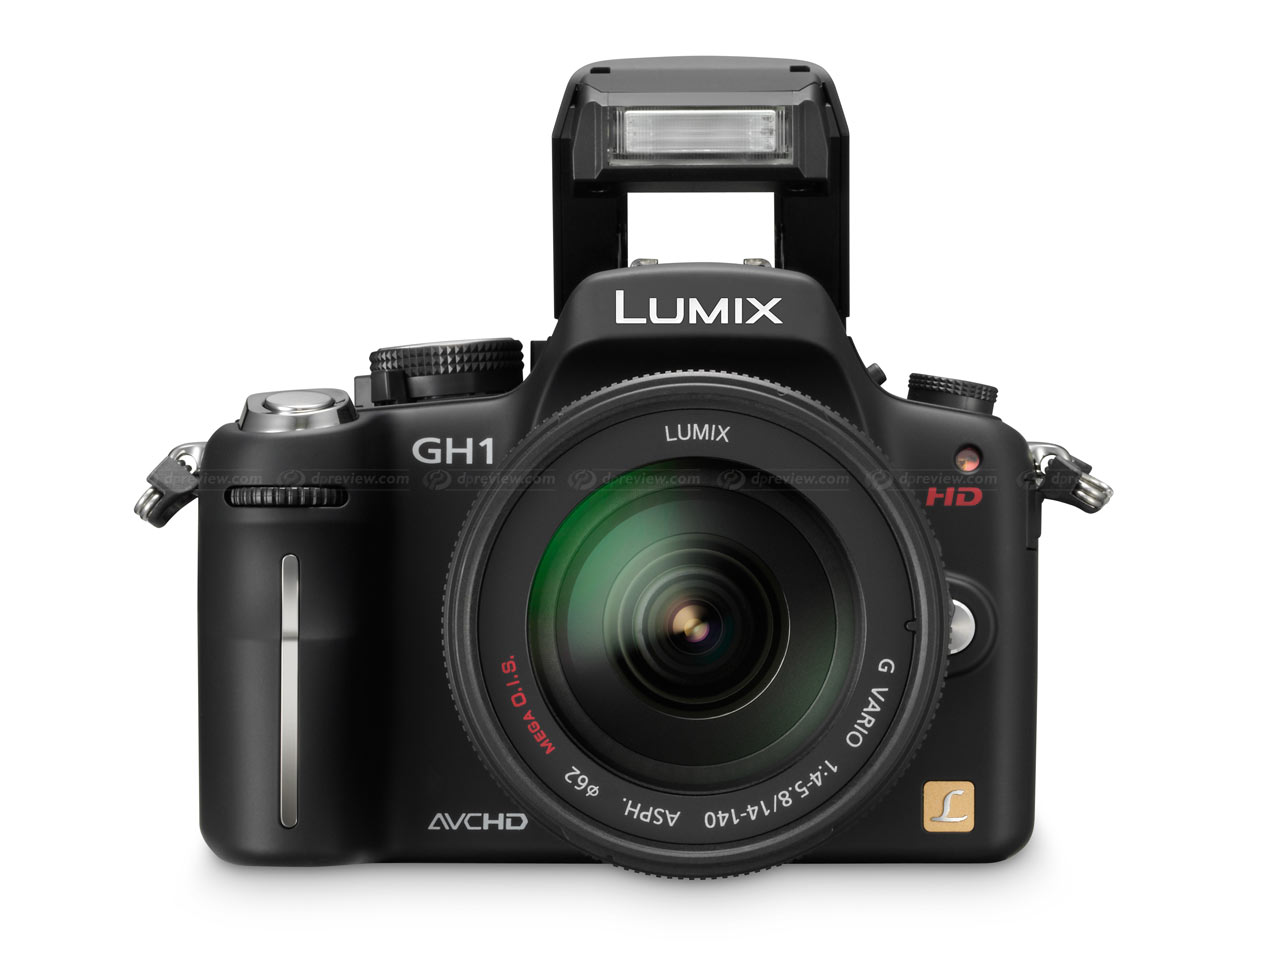 The CREATIVE HD HYBRID from the LUMIX G Micro System The DMC-GH1 -- With  D-SLR Photo Quality and Full-HD Movies